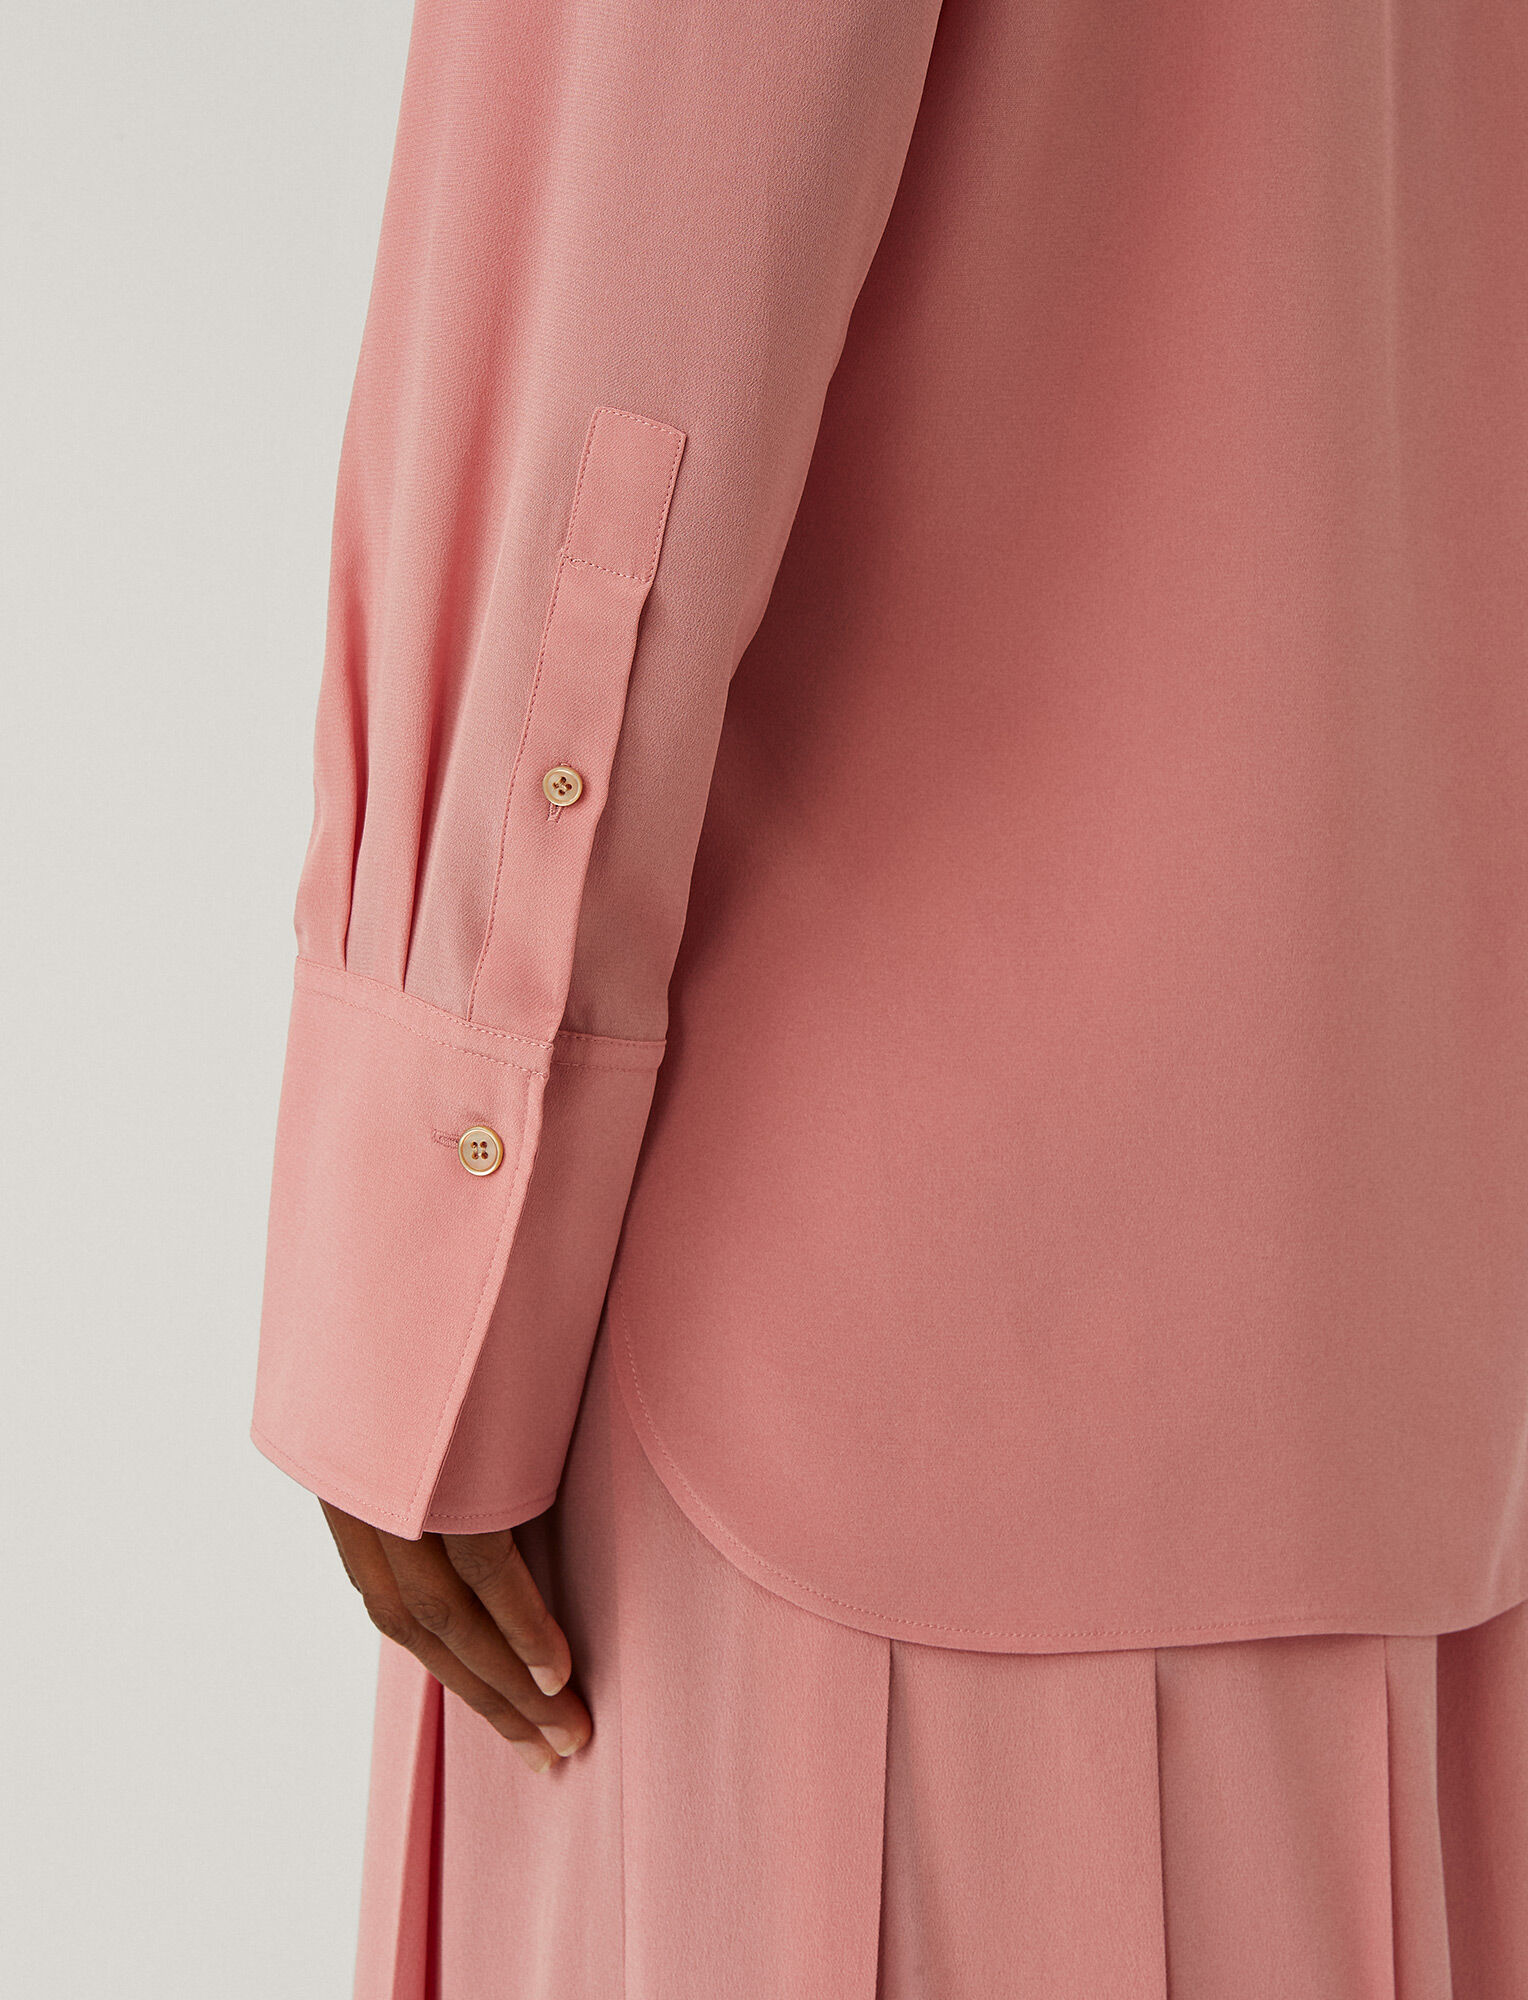 Joseph, Joe Crepe De Chine Blouse, in Rose